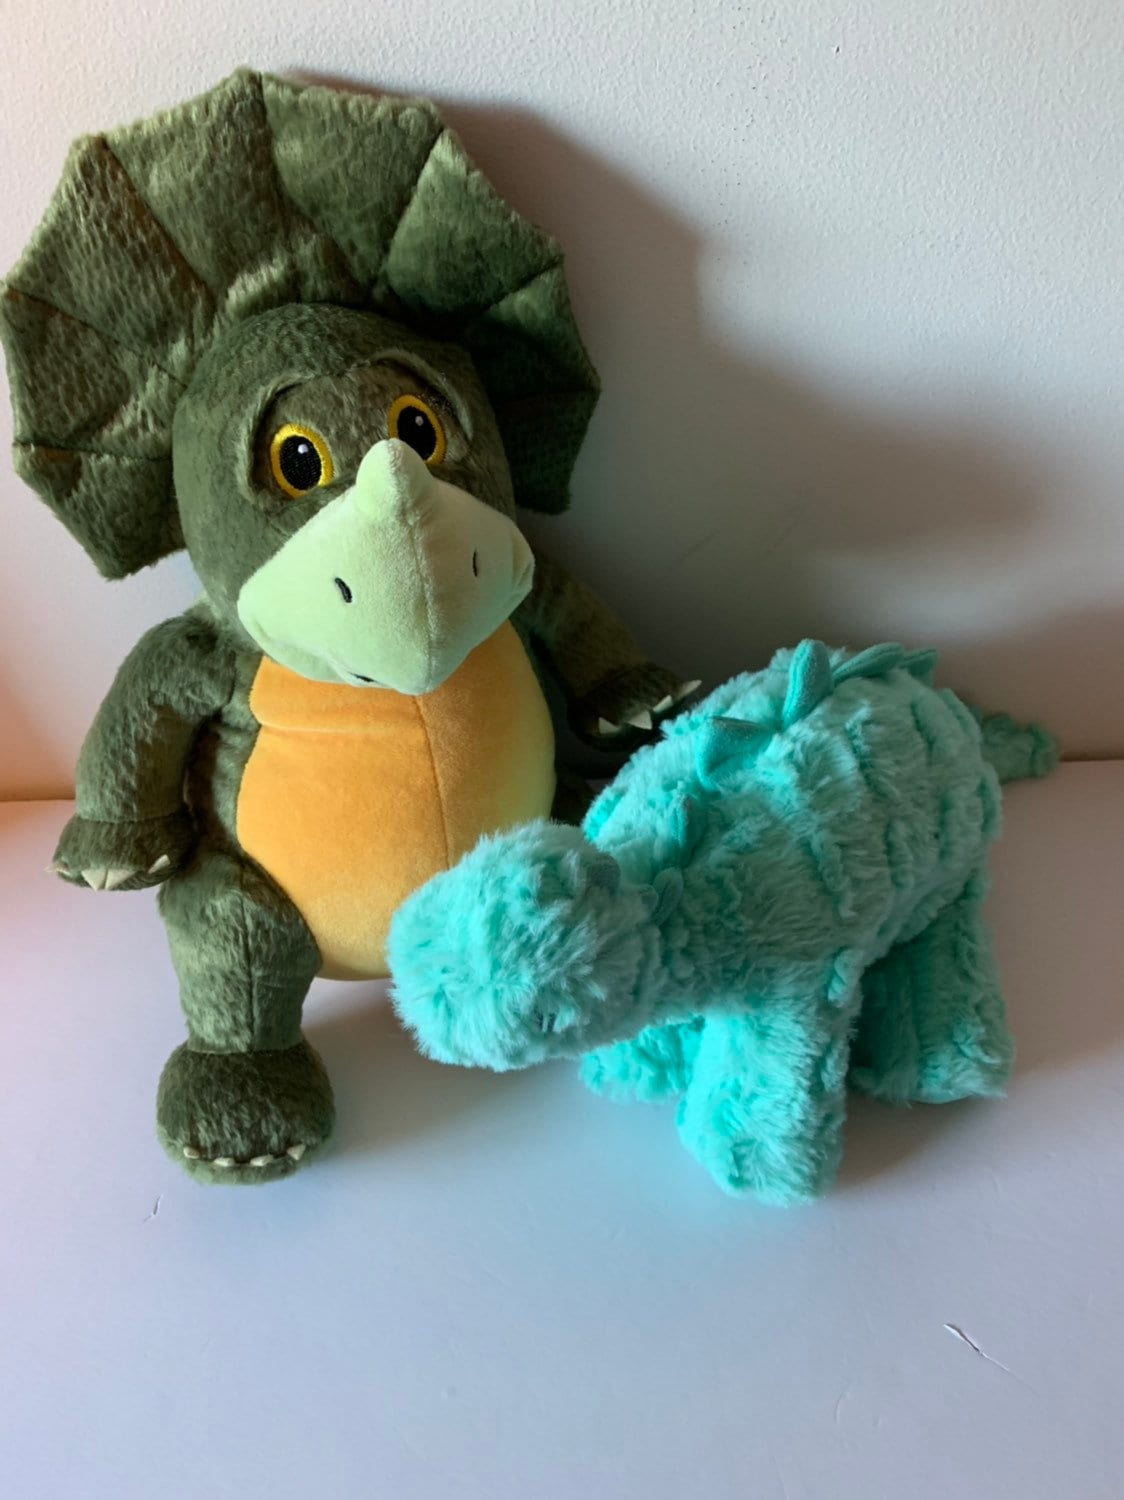 Weighted Stuffed Animal Dinosaur Triceratops 4 Lbs Sensory Toy